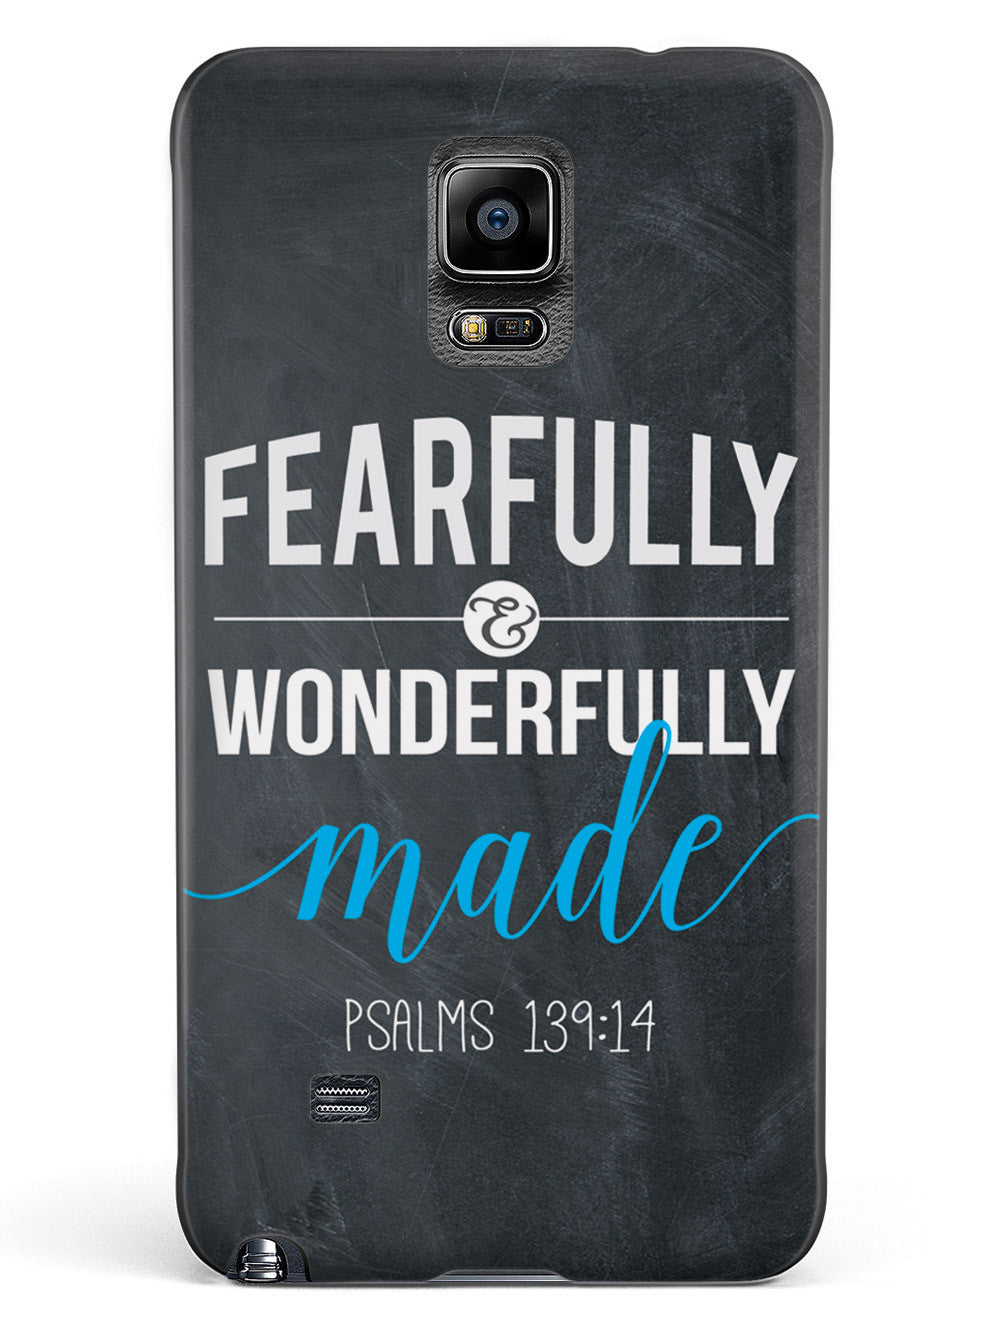 Psalms 139:14 Bible Verse Quote Case